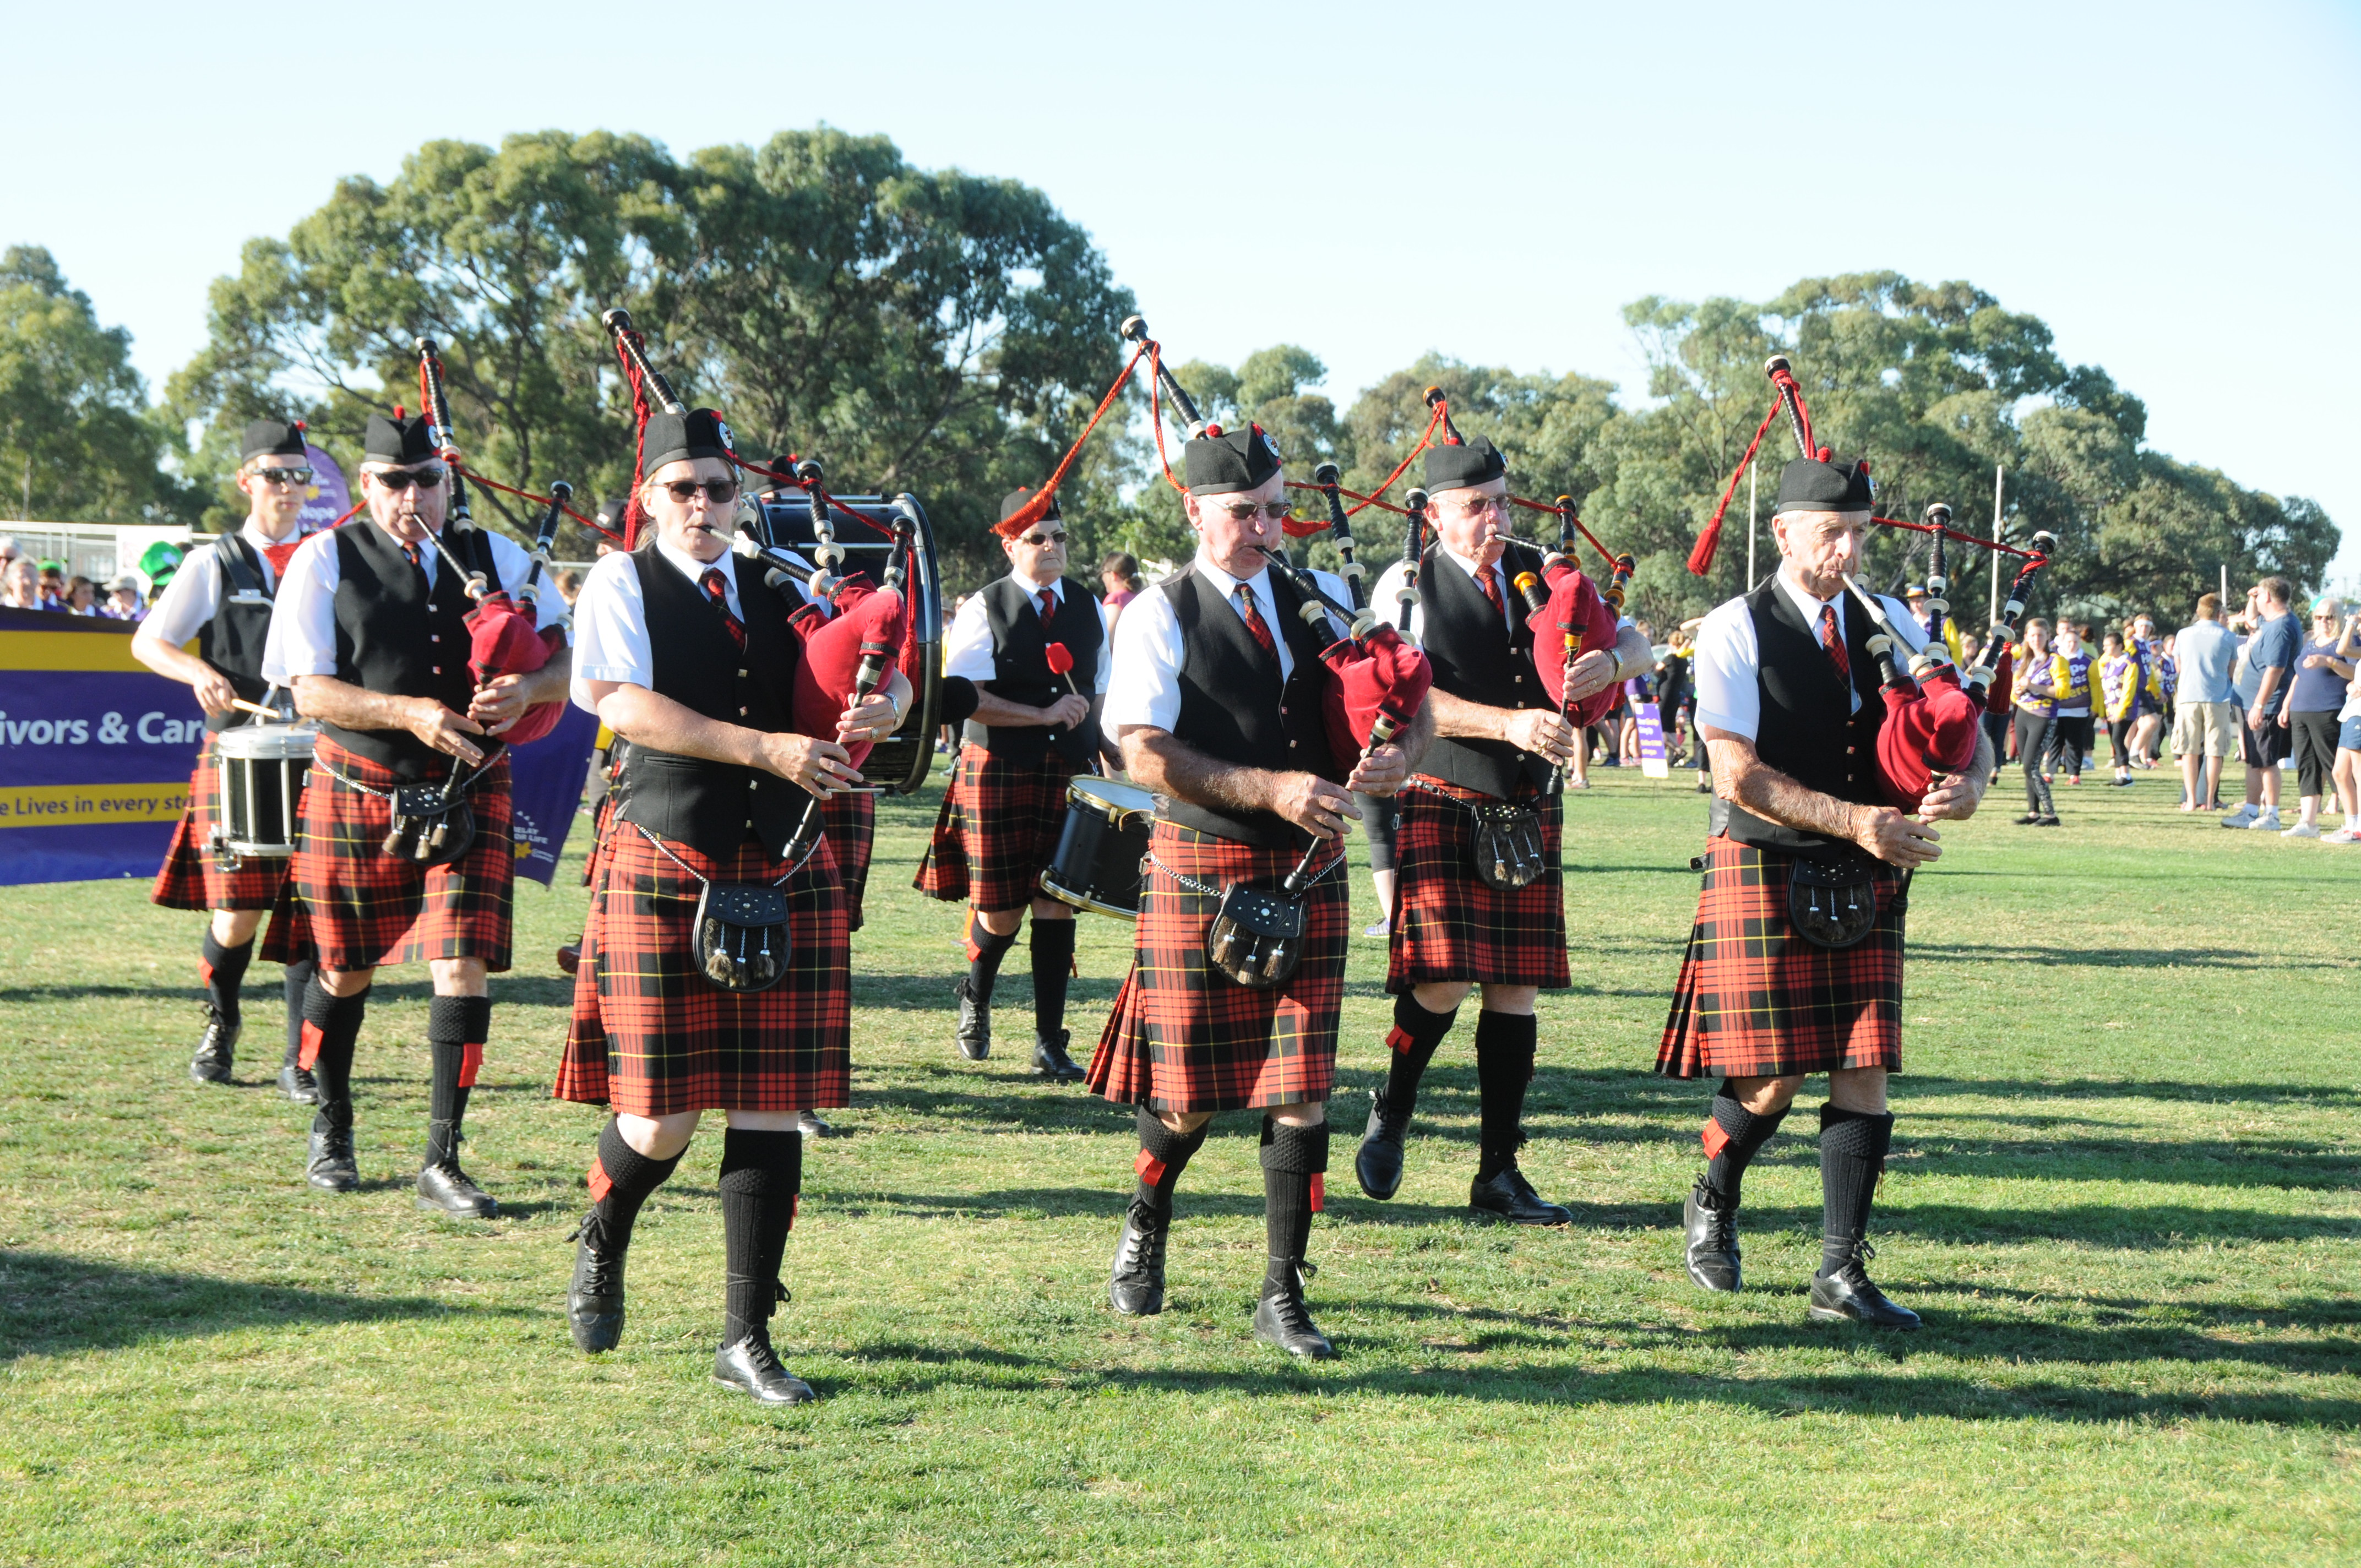 Image - Horsham and District Relay for Life, 170317. Horsham City Pipe Band led the first lap.